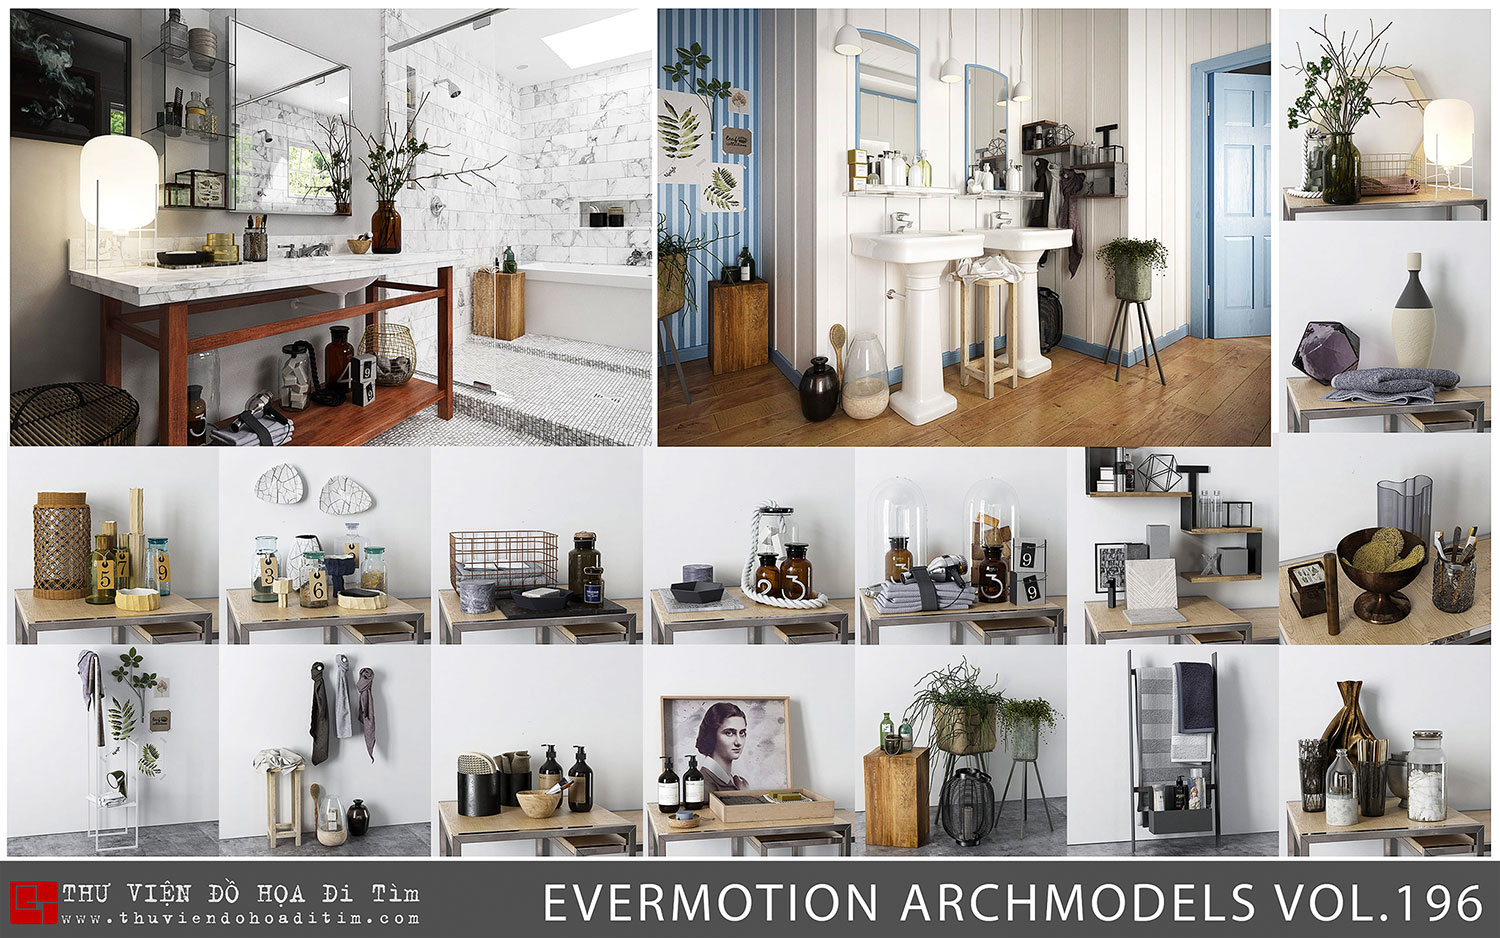 Evermotion Archmodels vol.196